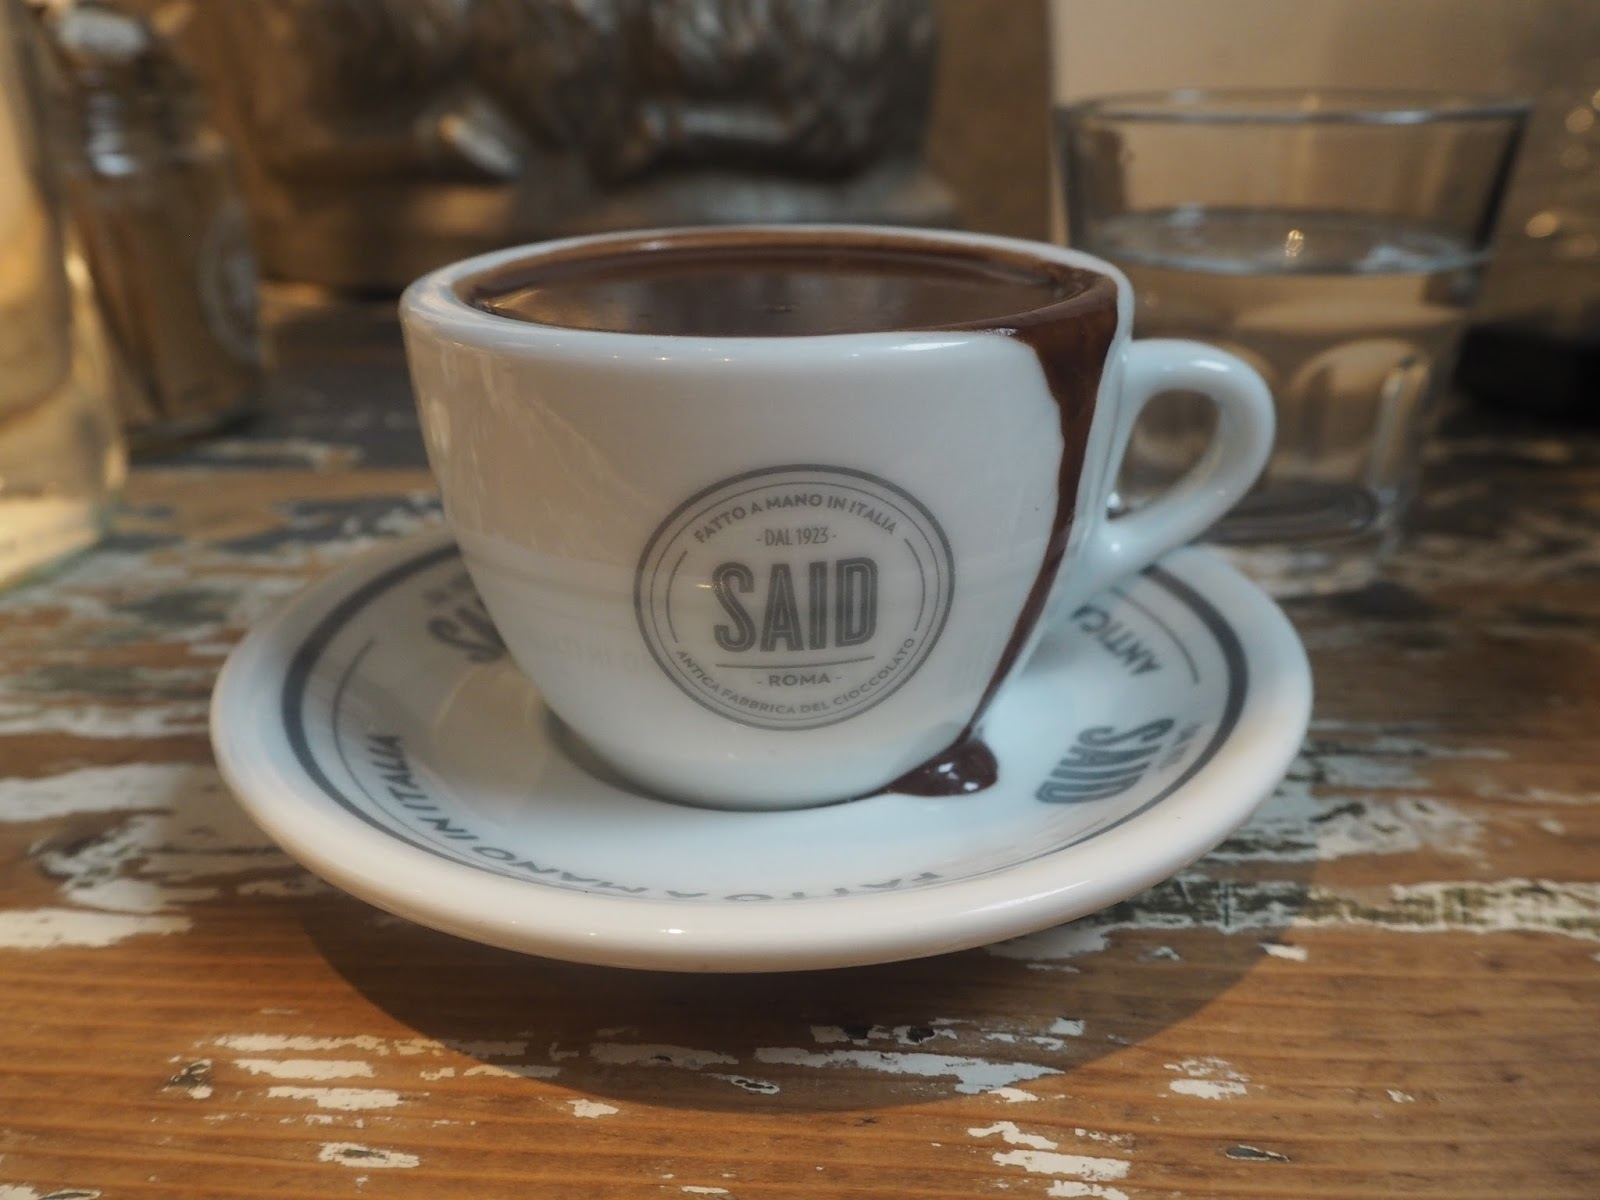 Hot chocolate from Said, Soho